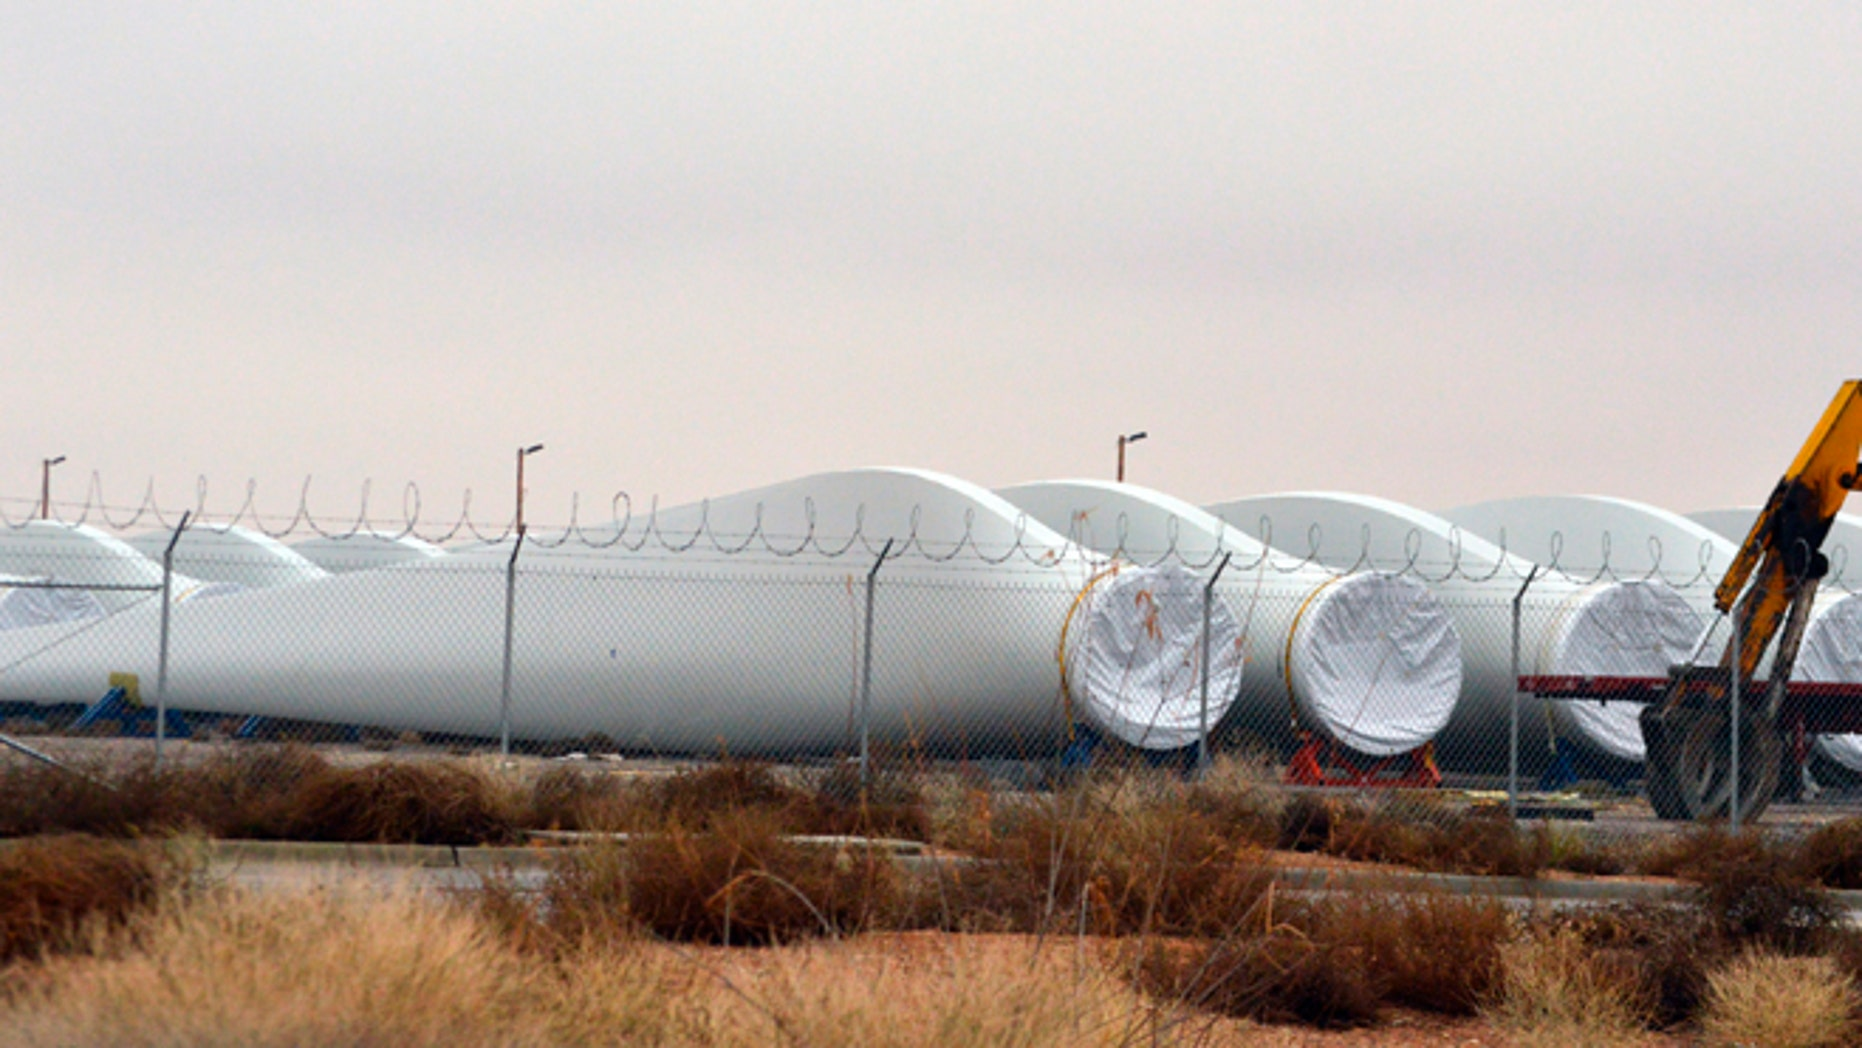 Blades for wind turbines sit in a field in the New Mexico town of Santa Teresa along the U.S.-Mexico border.